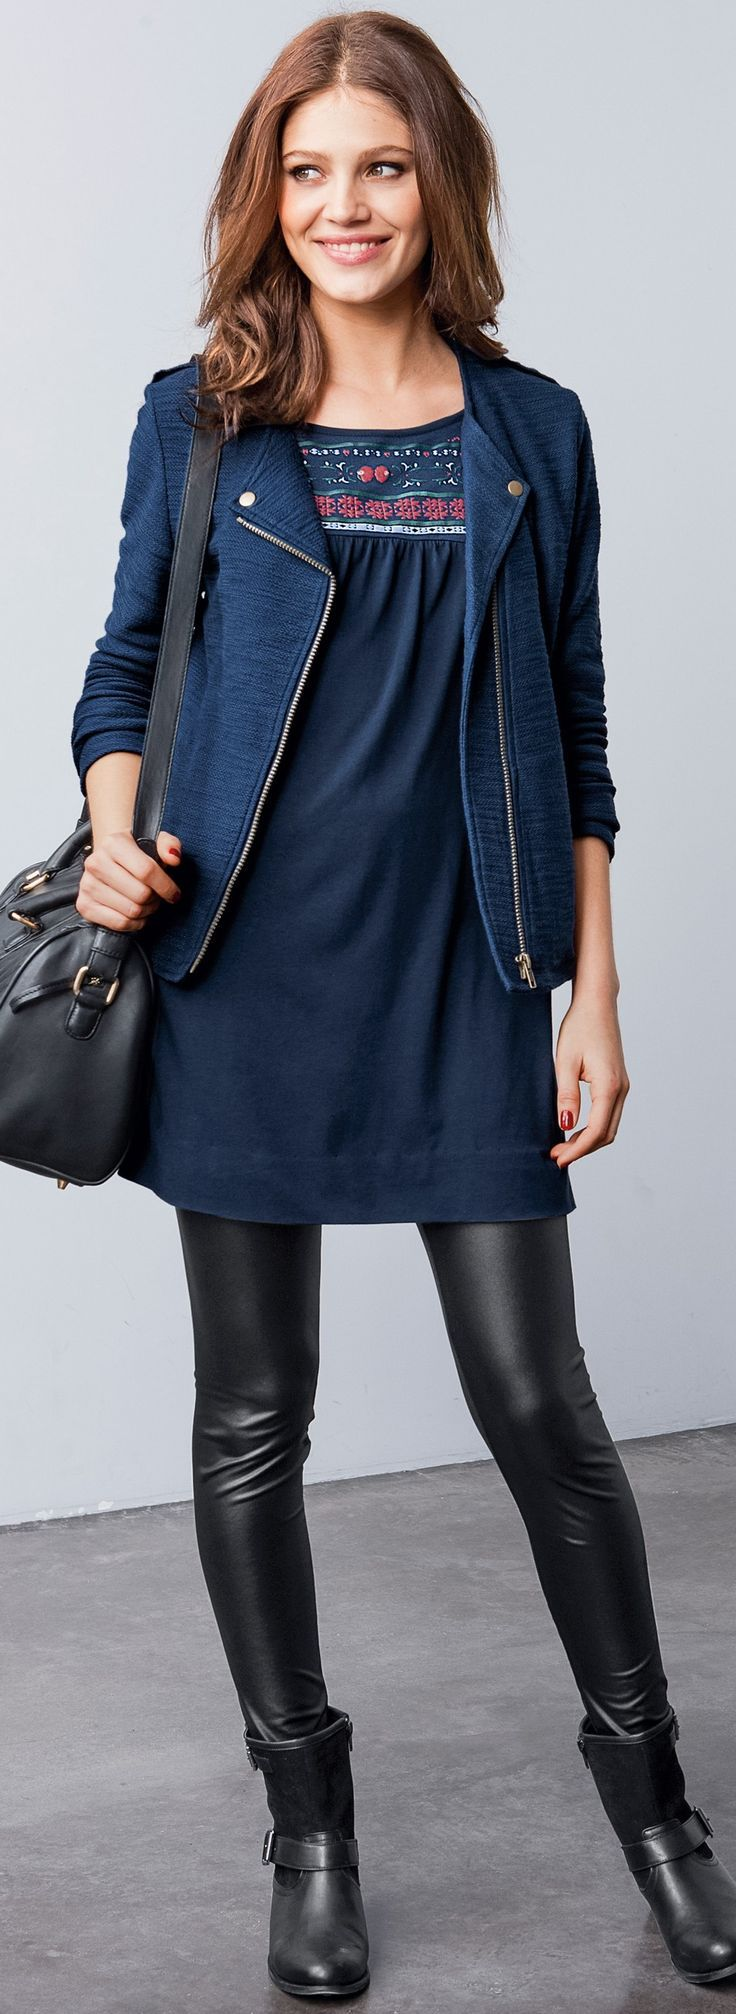 Fantastic The Best Autumn Fashion For Women Over 50 Styled By One Of The UKs